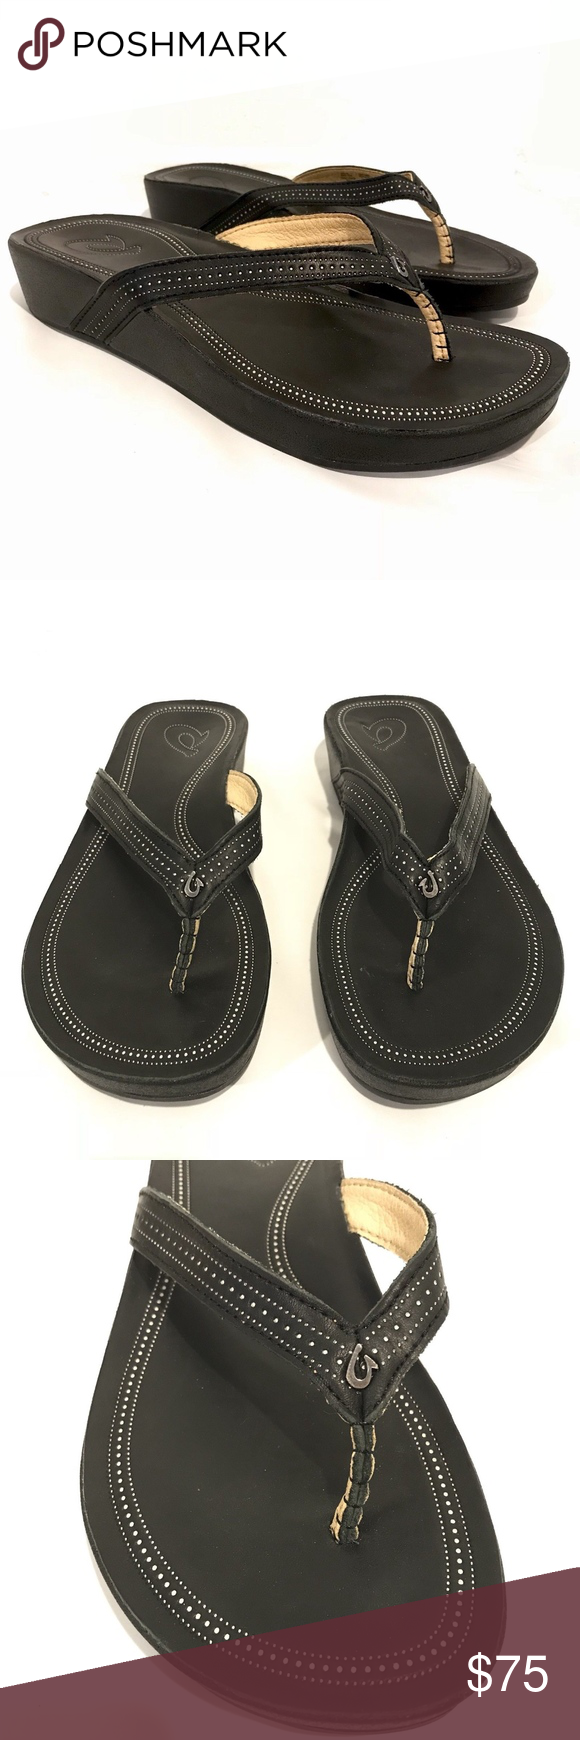 d4f0feb7f9cfe0 Olukai OLA Black Leather Wedge Flip Flop Sandals OluKai OLA flip flop  sandals. Black color